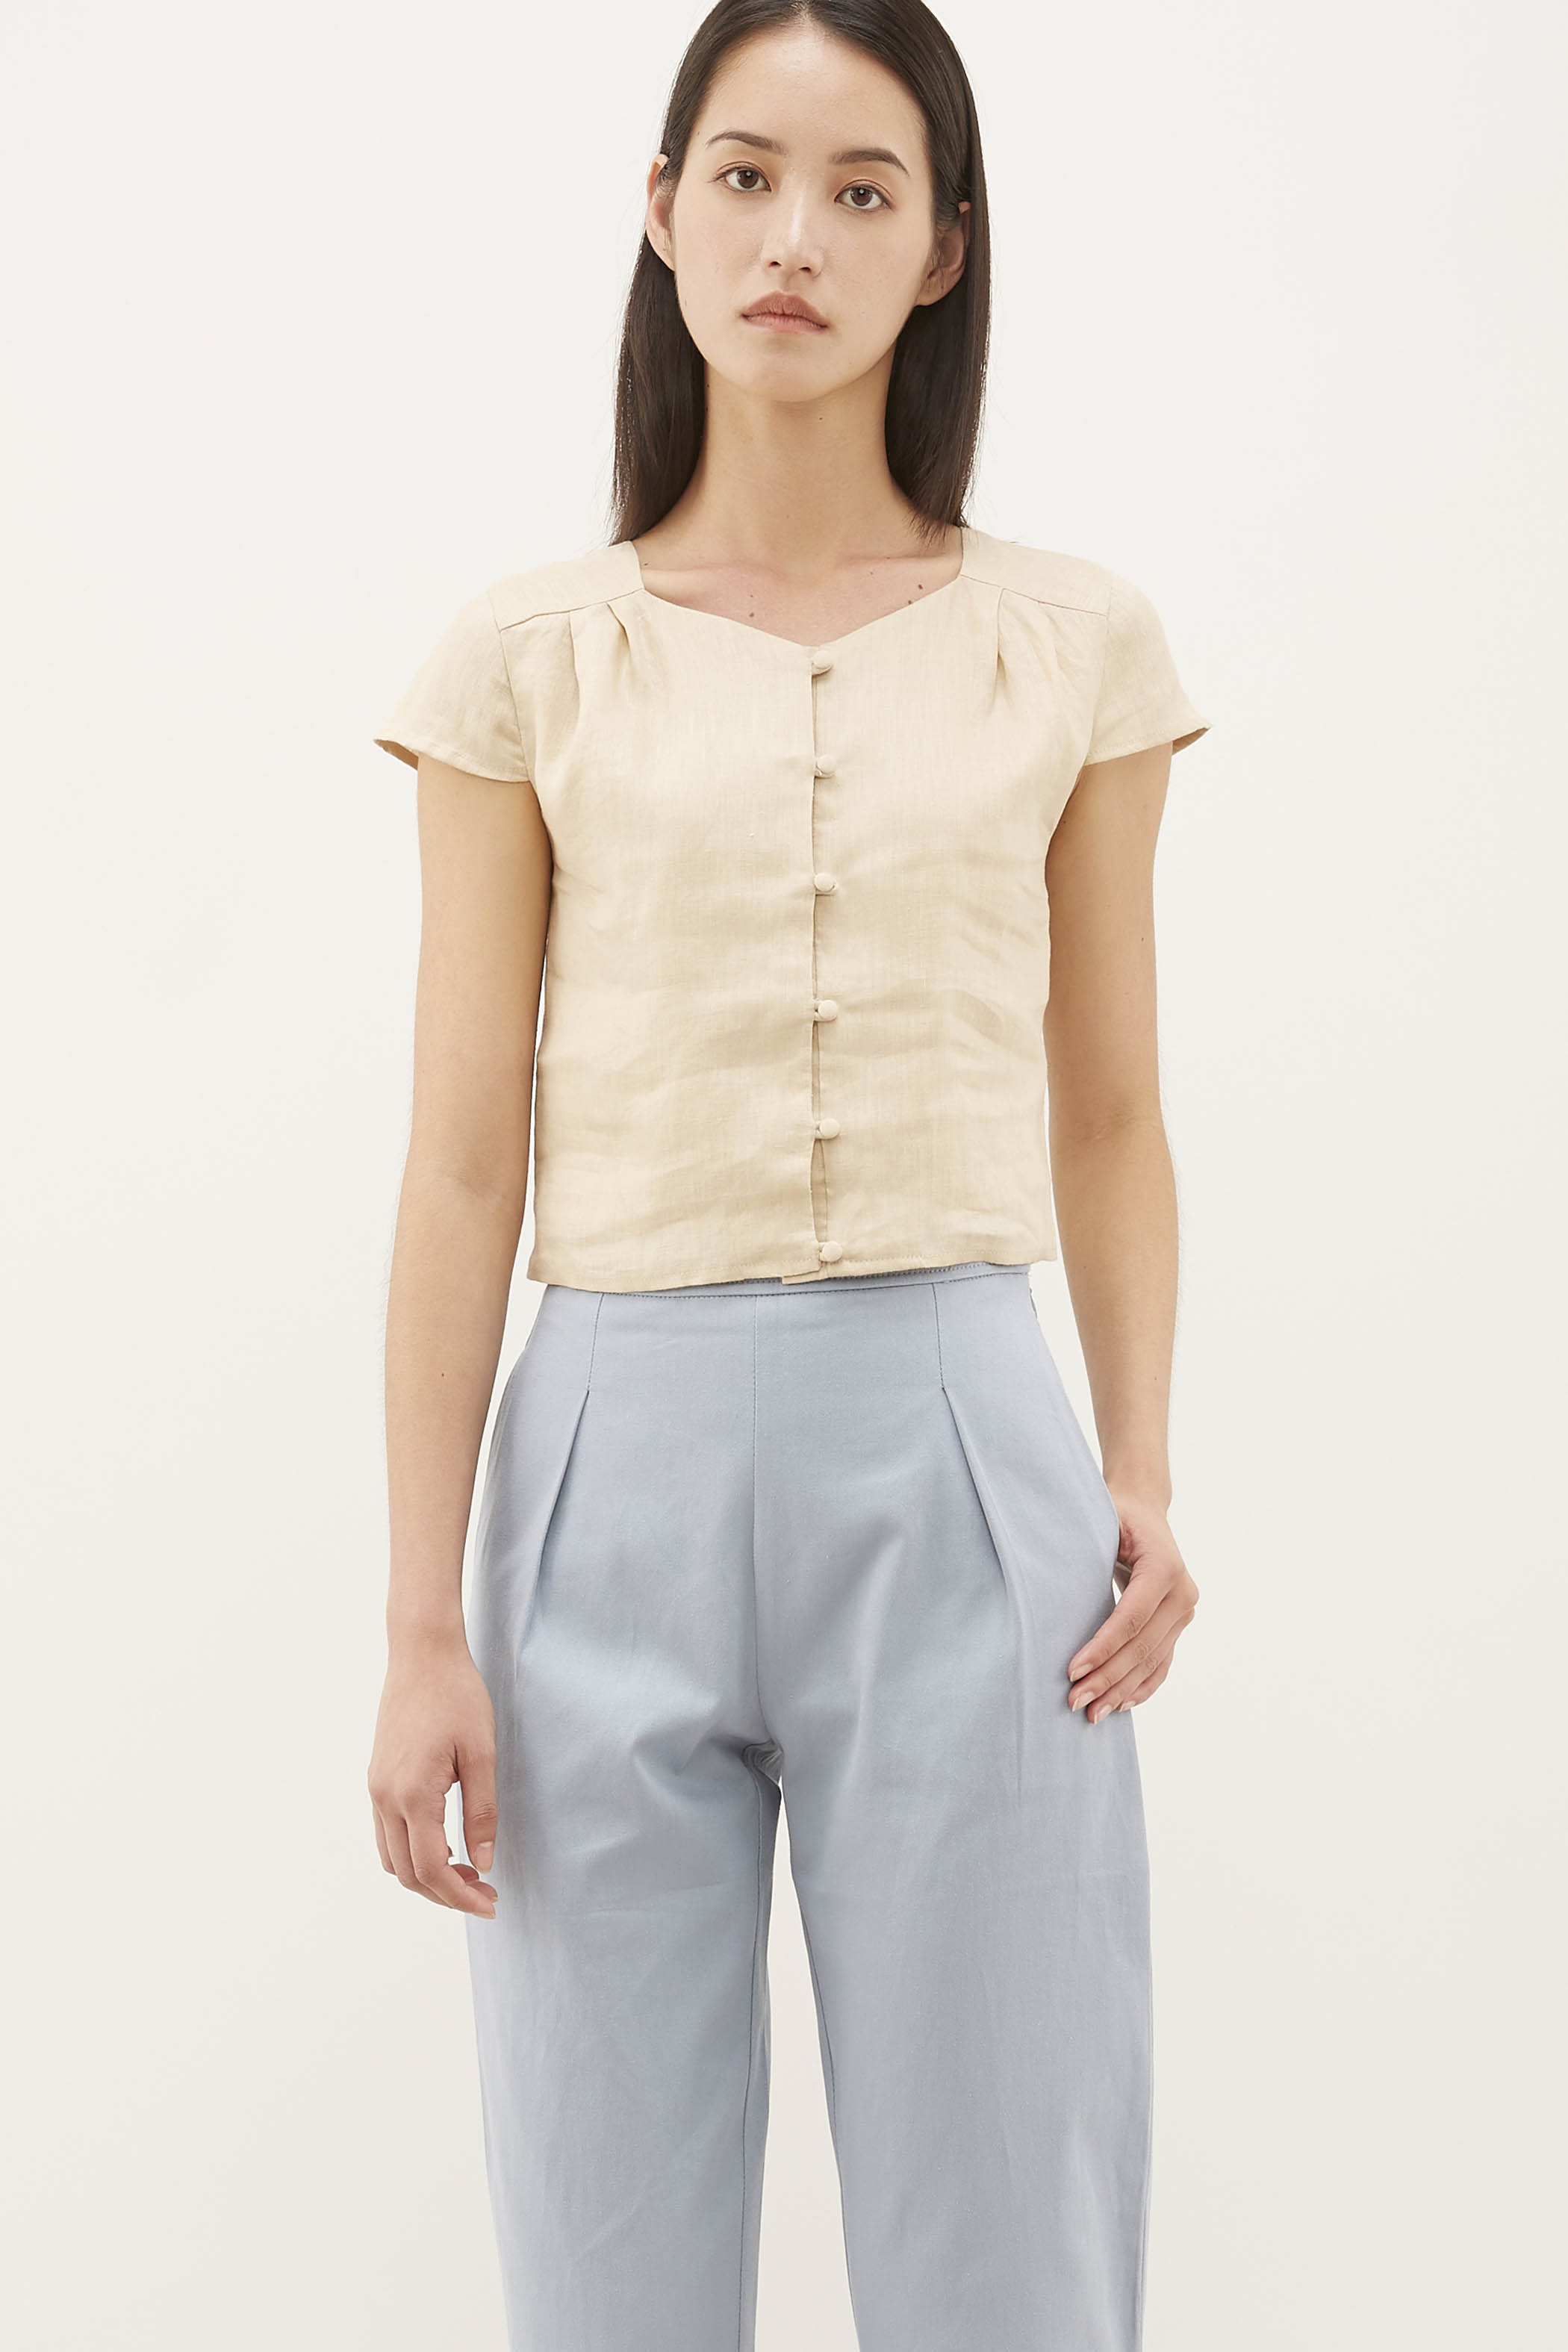 Akira Box Pleat Top